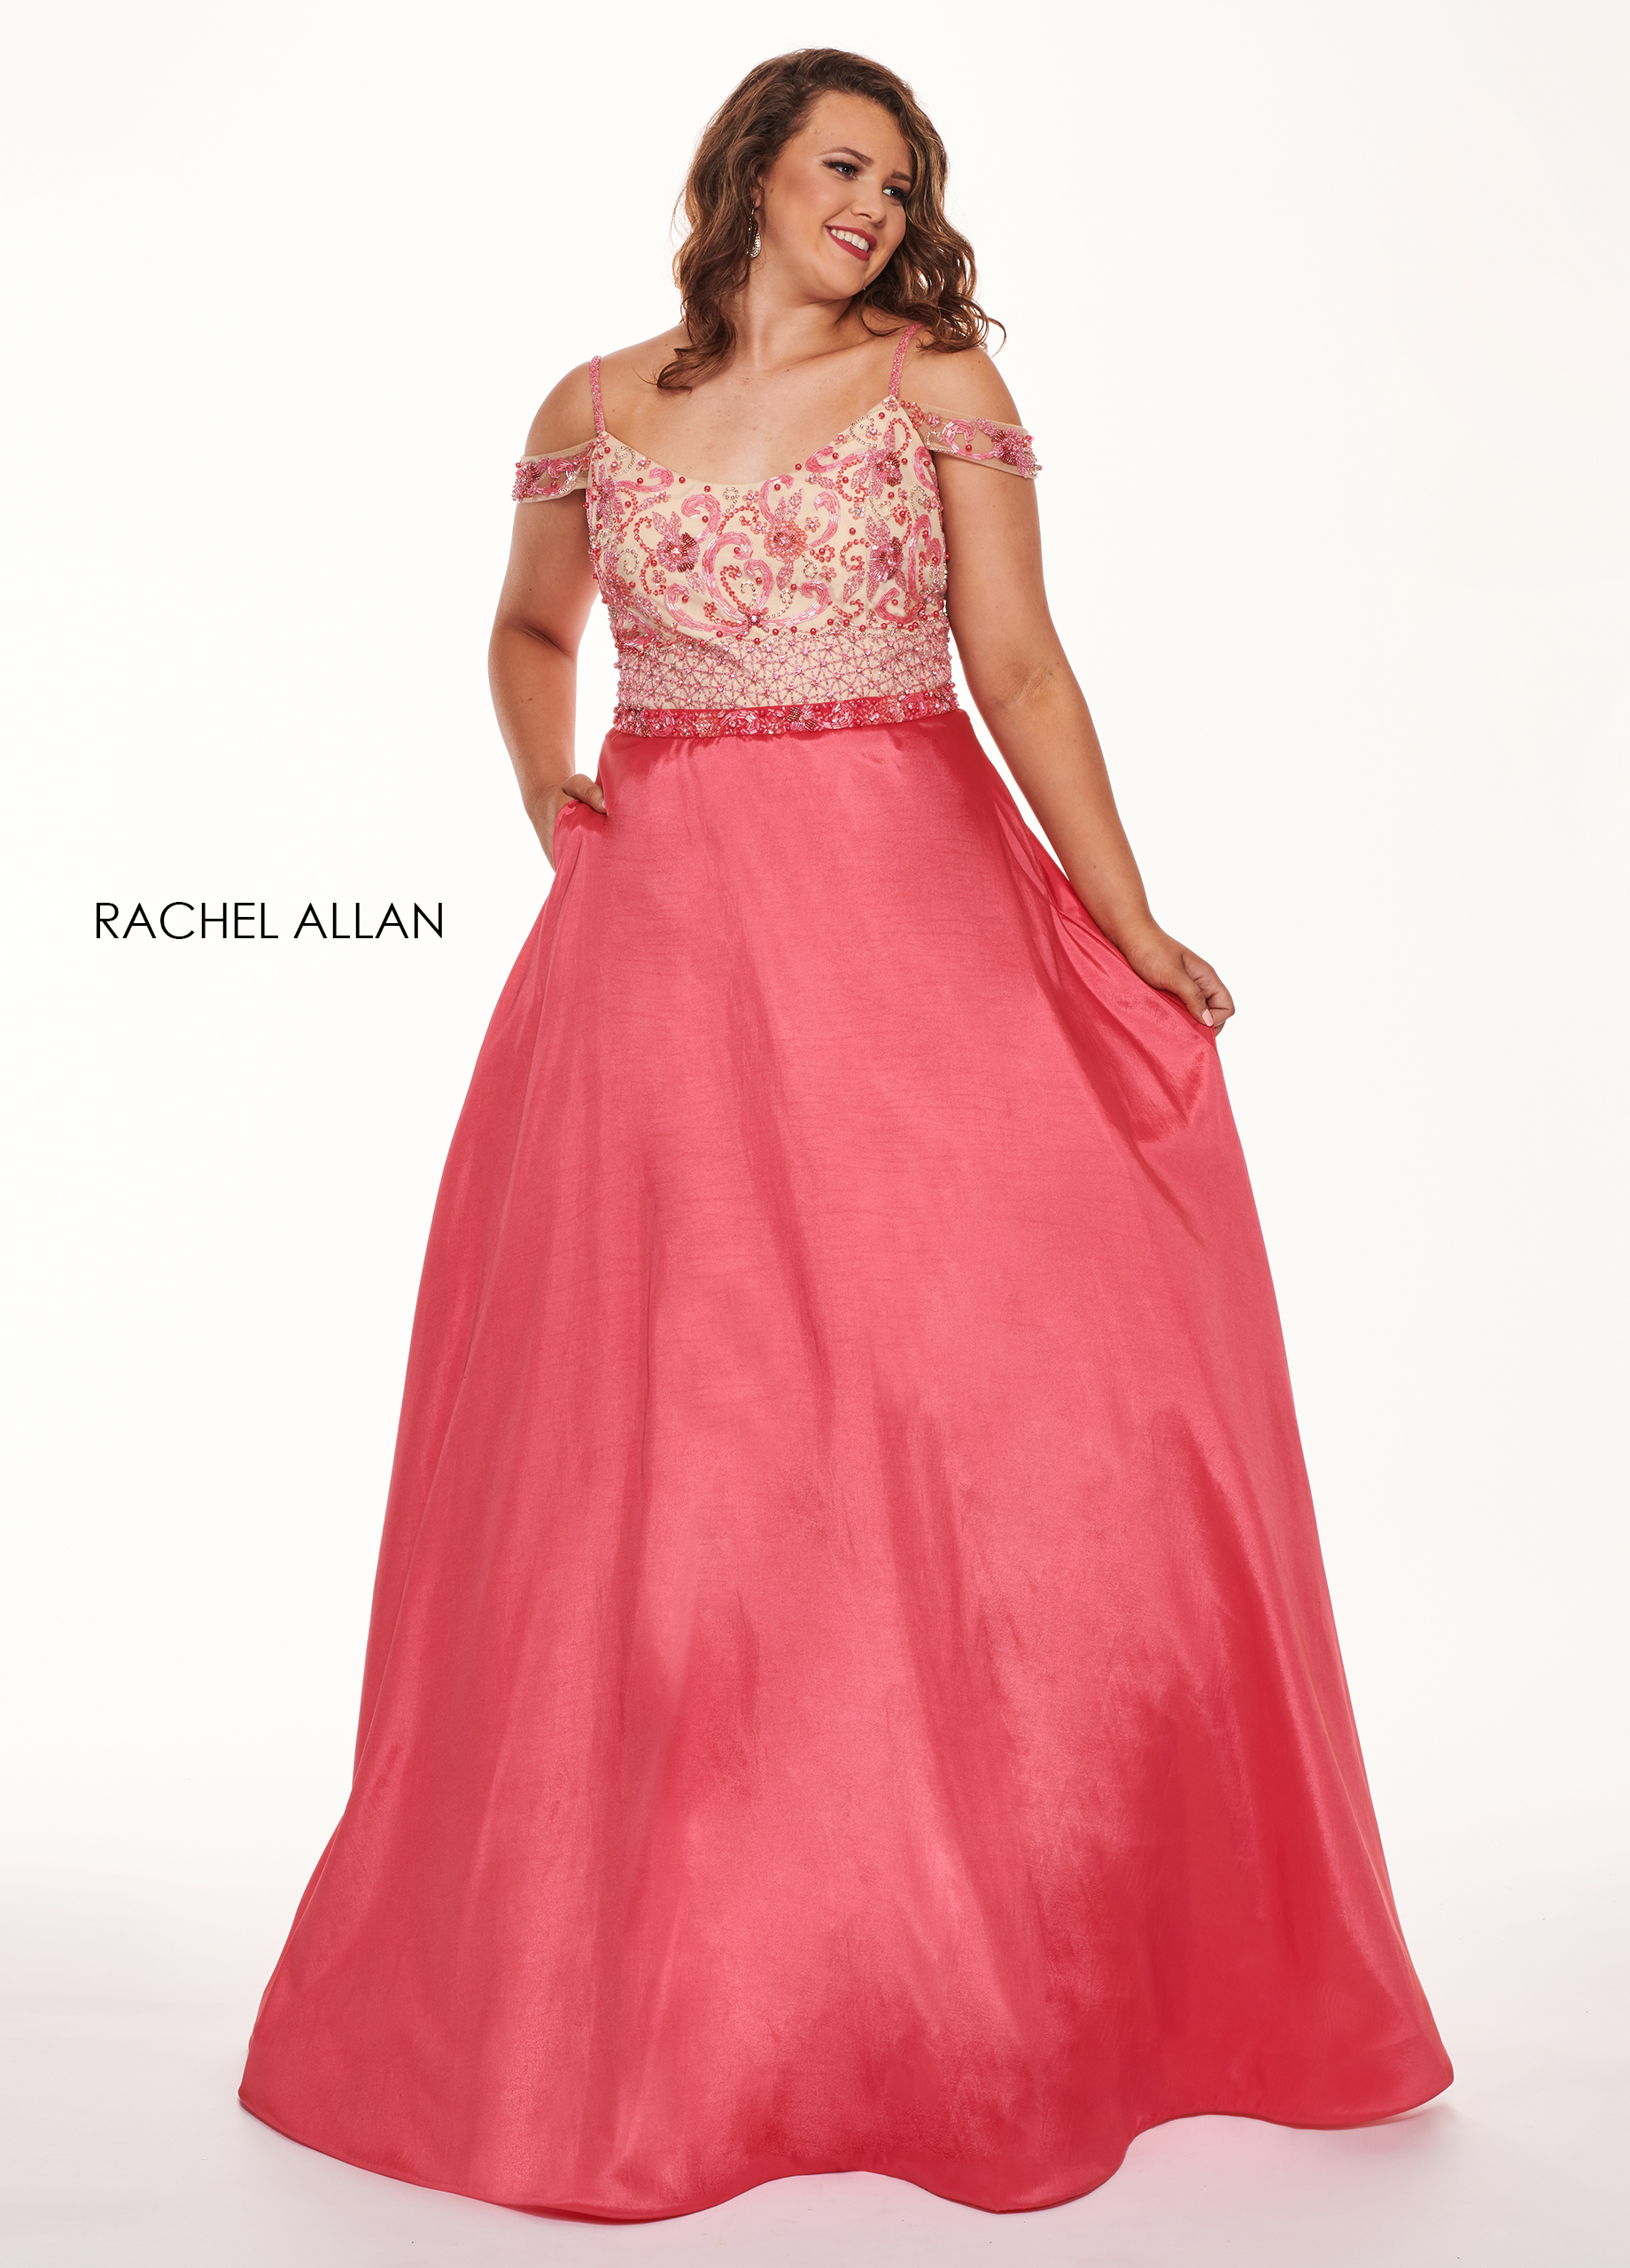 Scoop Neck A-Line Curves Dresses in Coral Color | Style - 6696